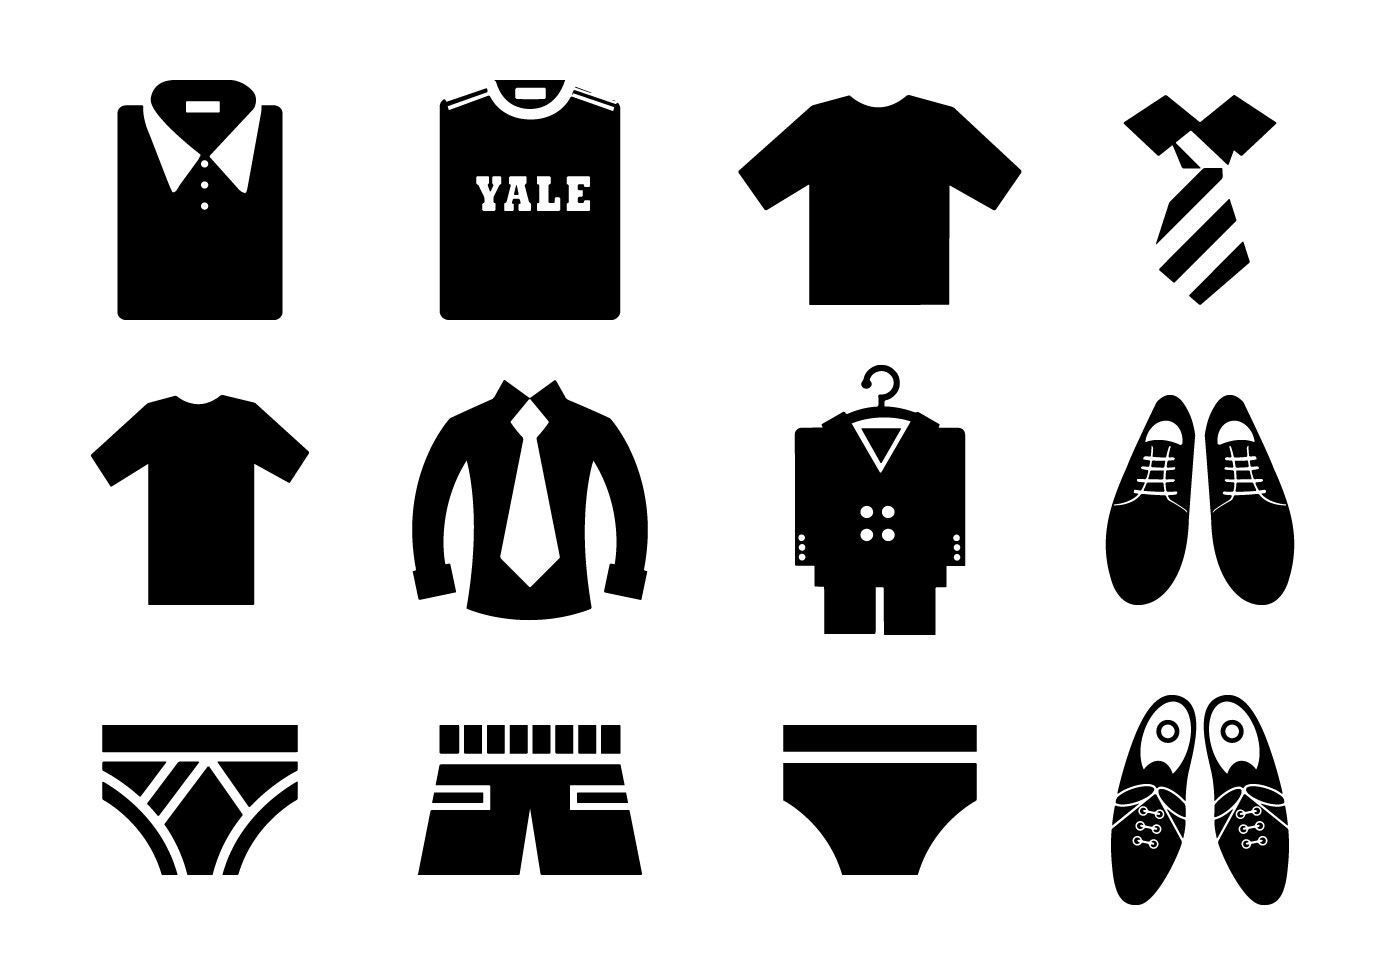 Male Clothing Vector Icon Pack - Kostenlose Vektor-Kunst, Archiv ...